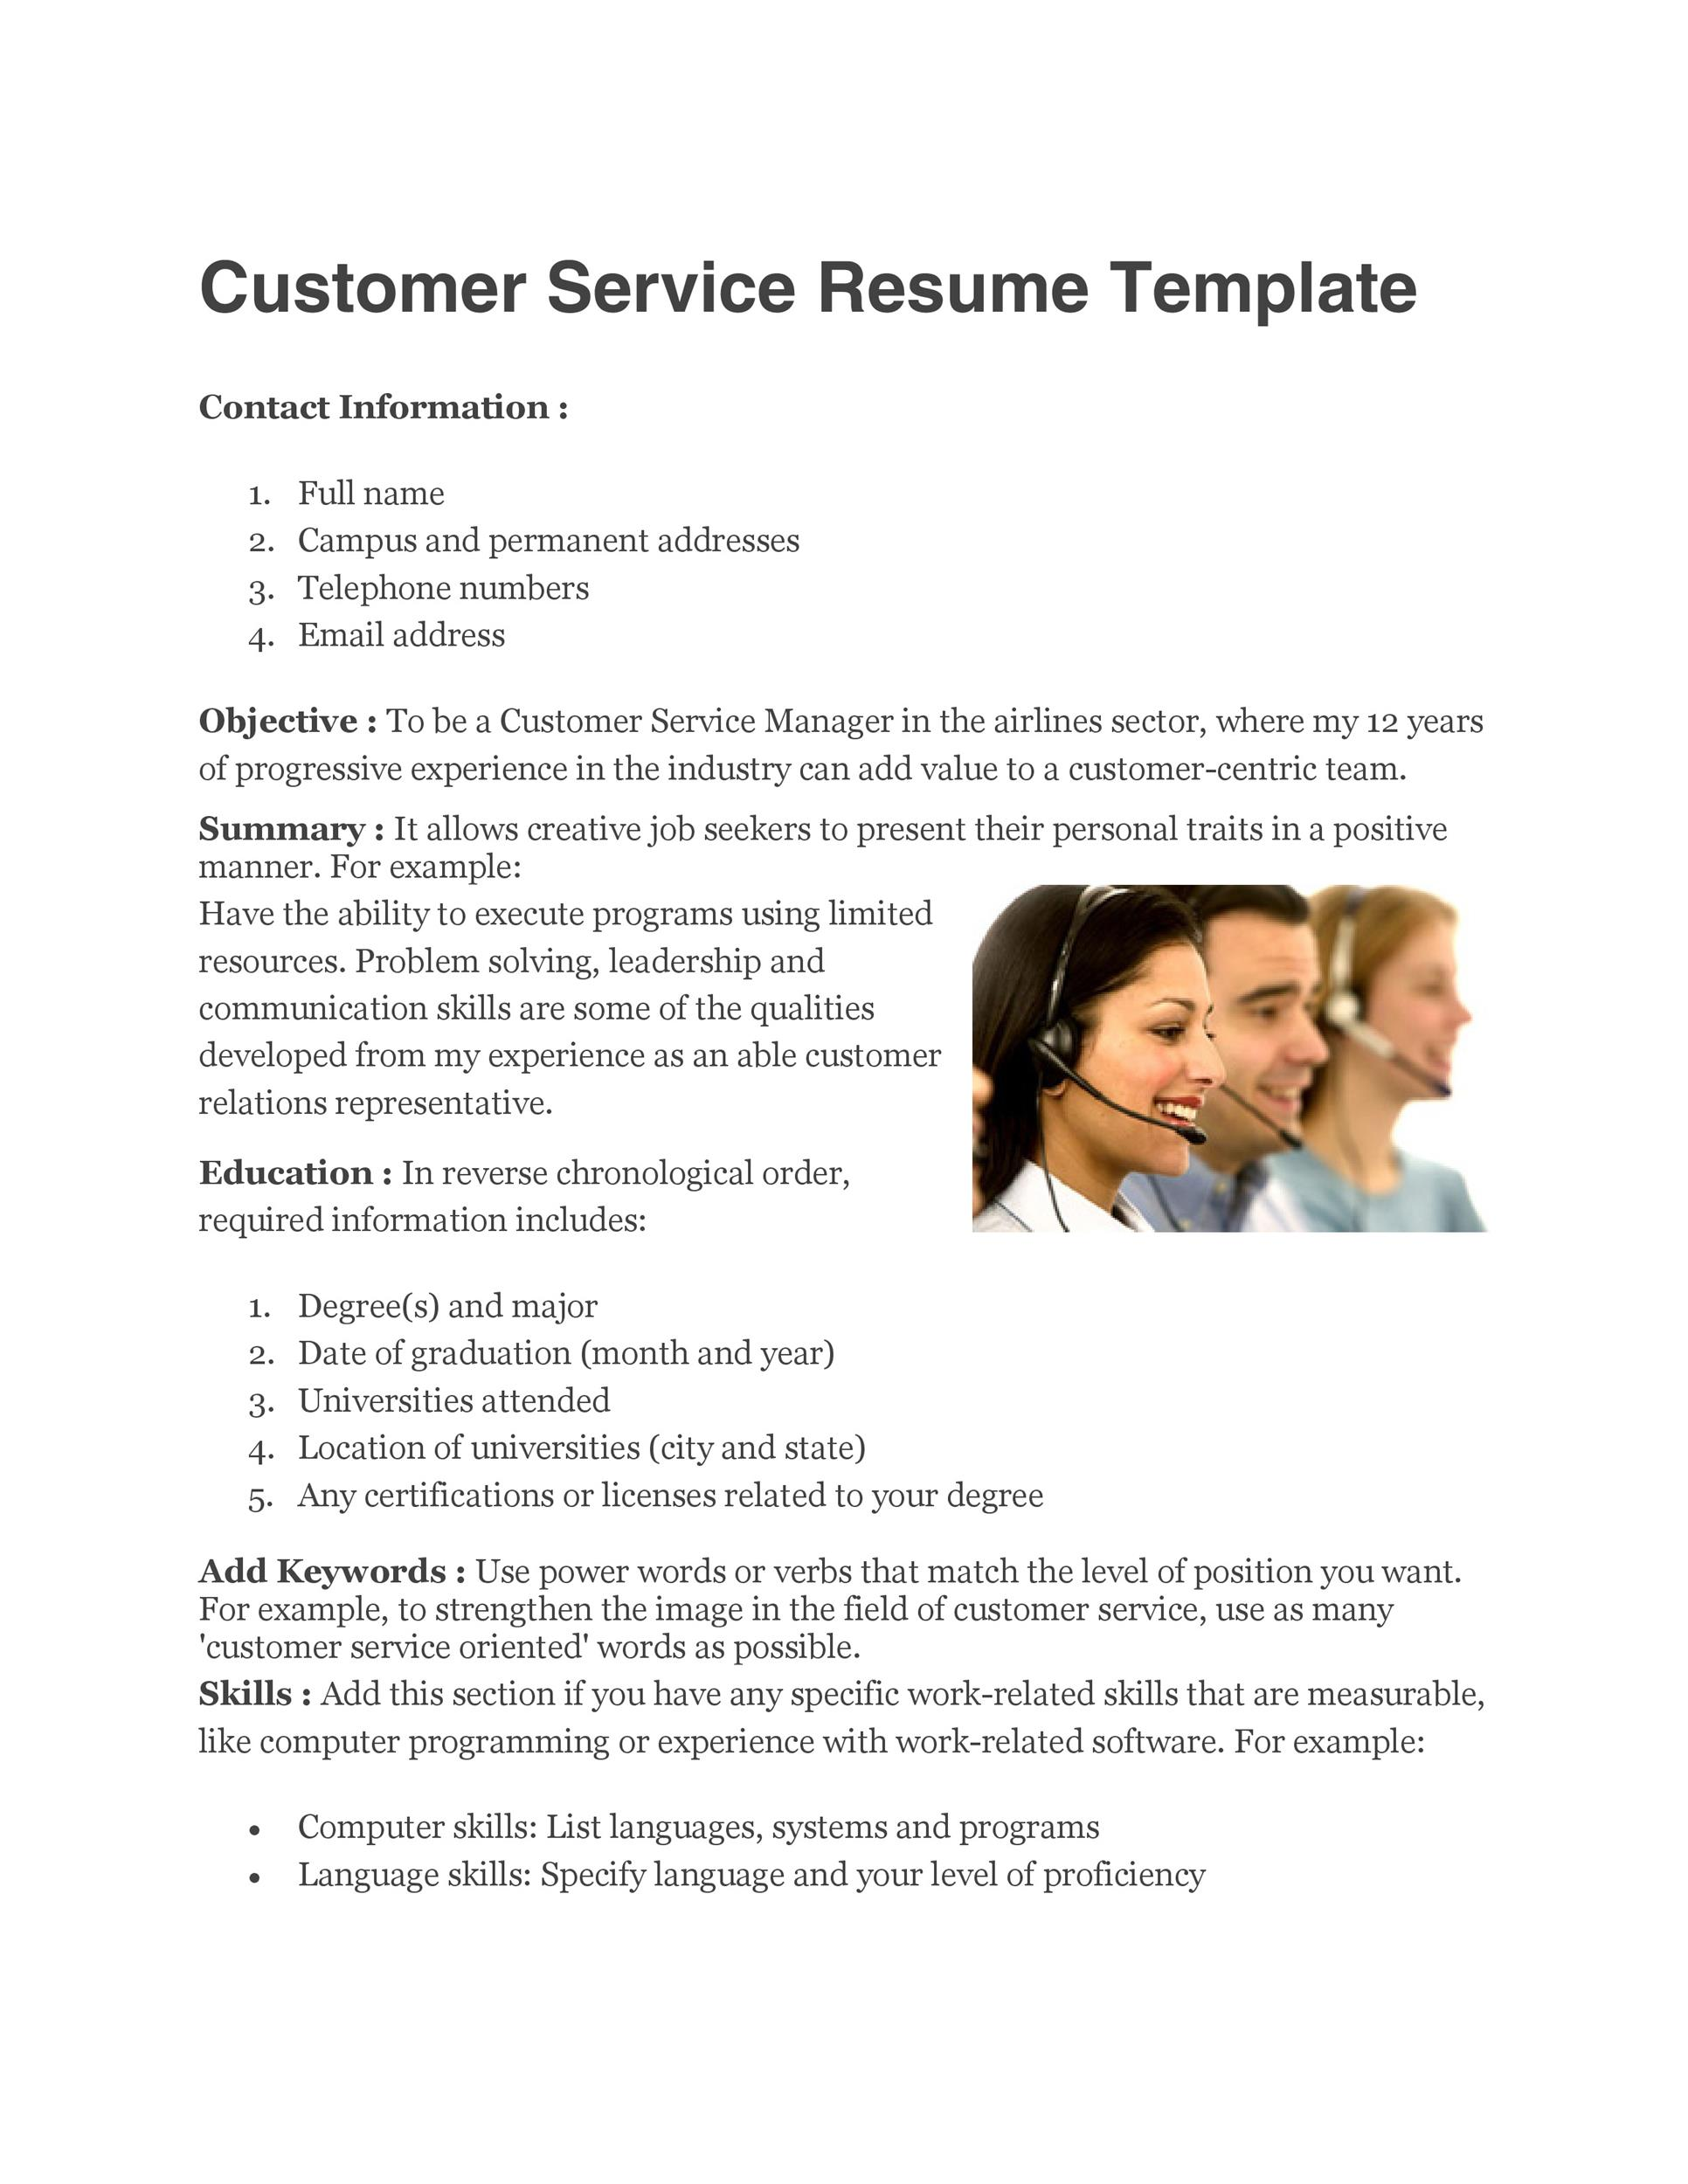 30+ Customer Service Resume Examples - Template Lab - Words For A Resume